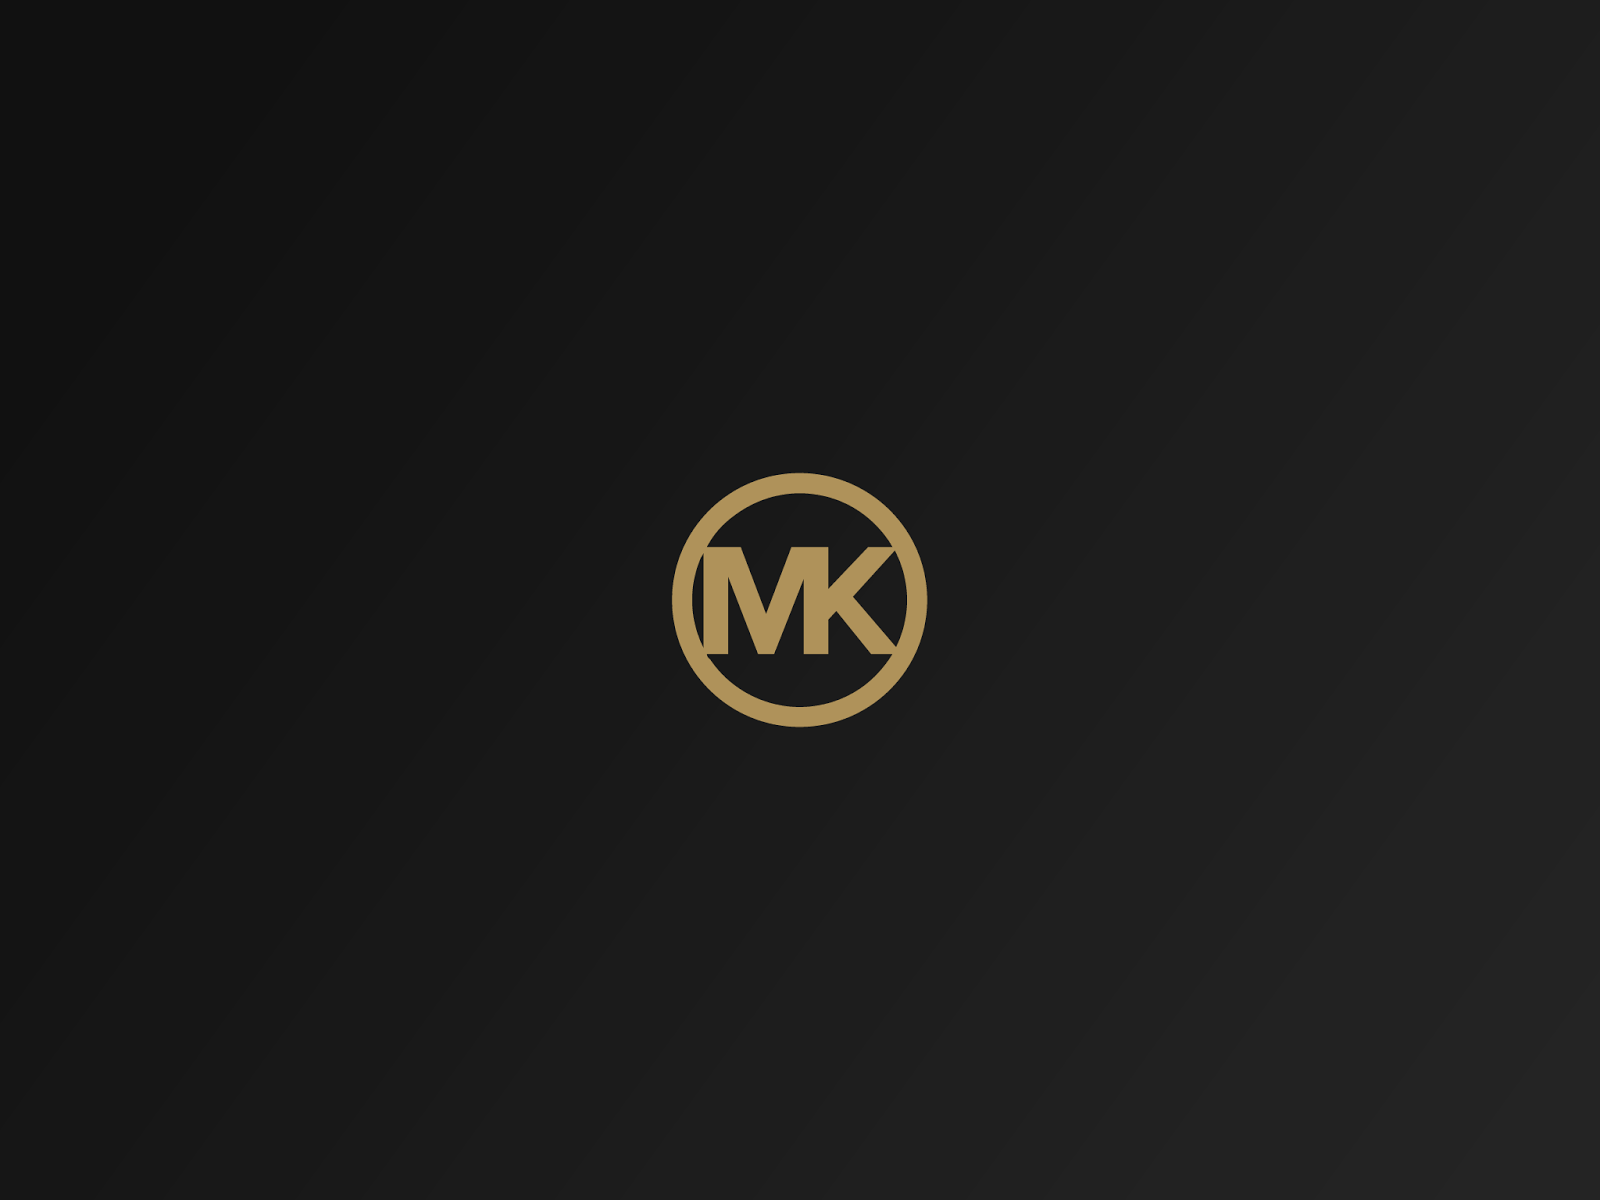 Michael Kors Wallpapers, Fine HDQ Michael Kors Photos | Fantastic .